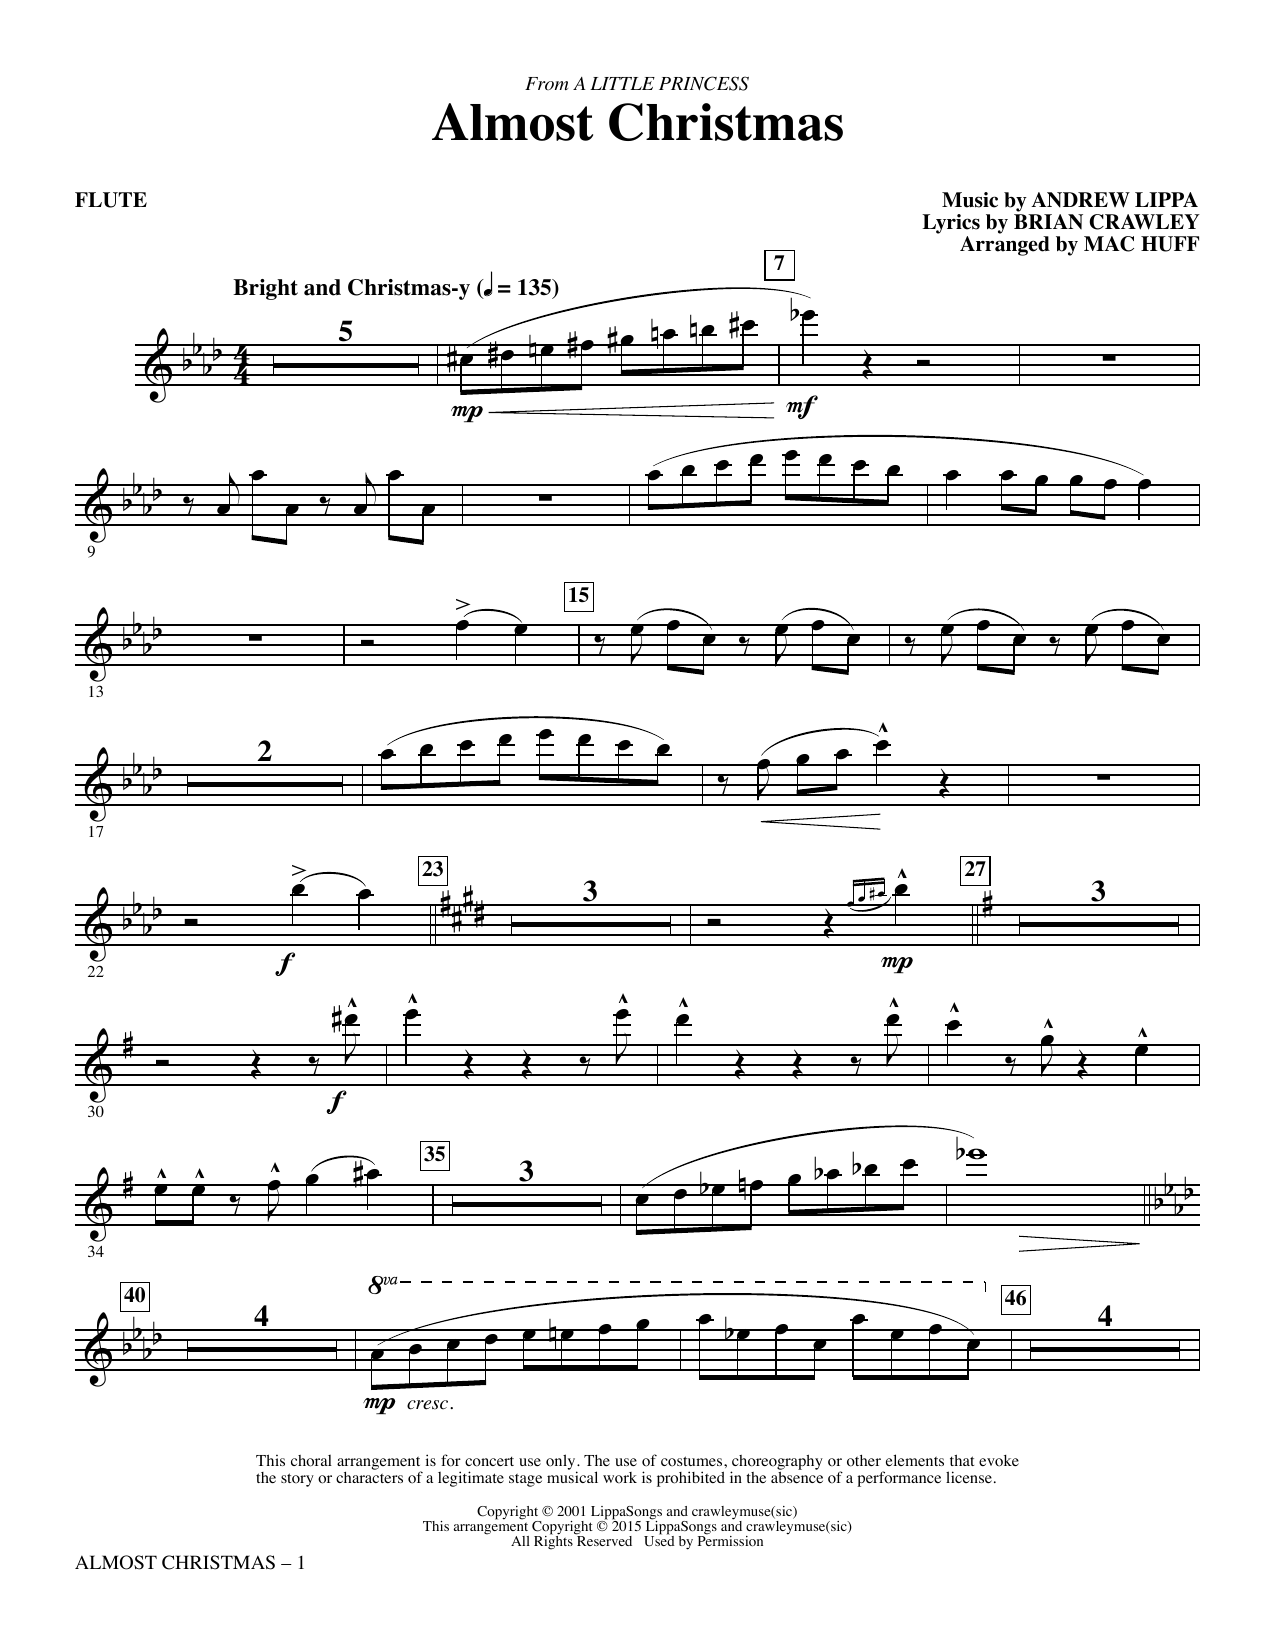 Almost Christmas - Flute Sheet Music